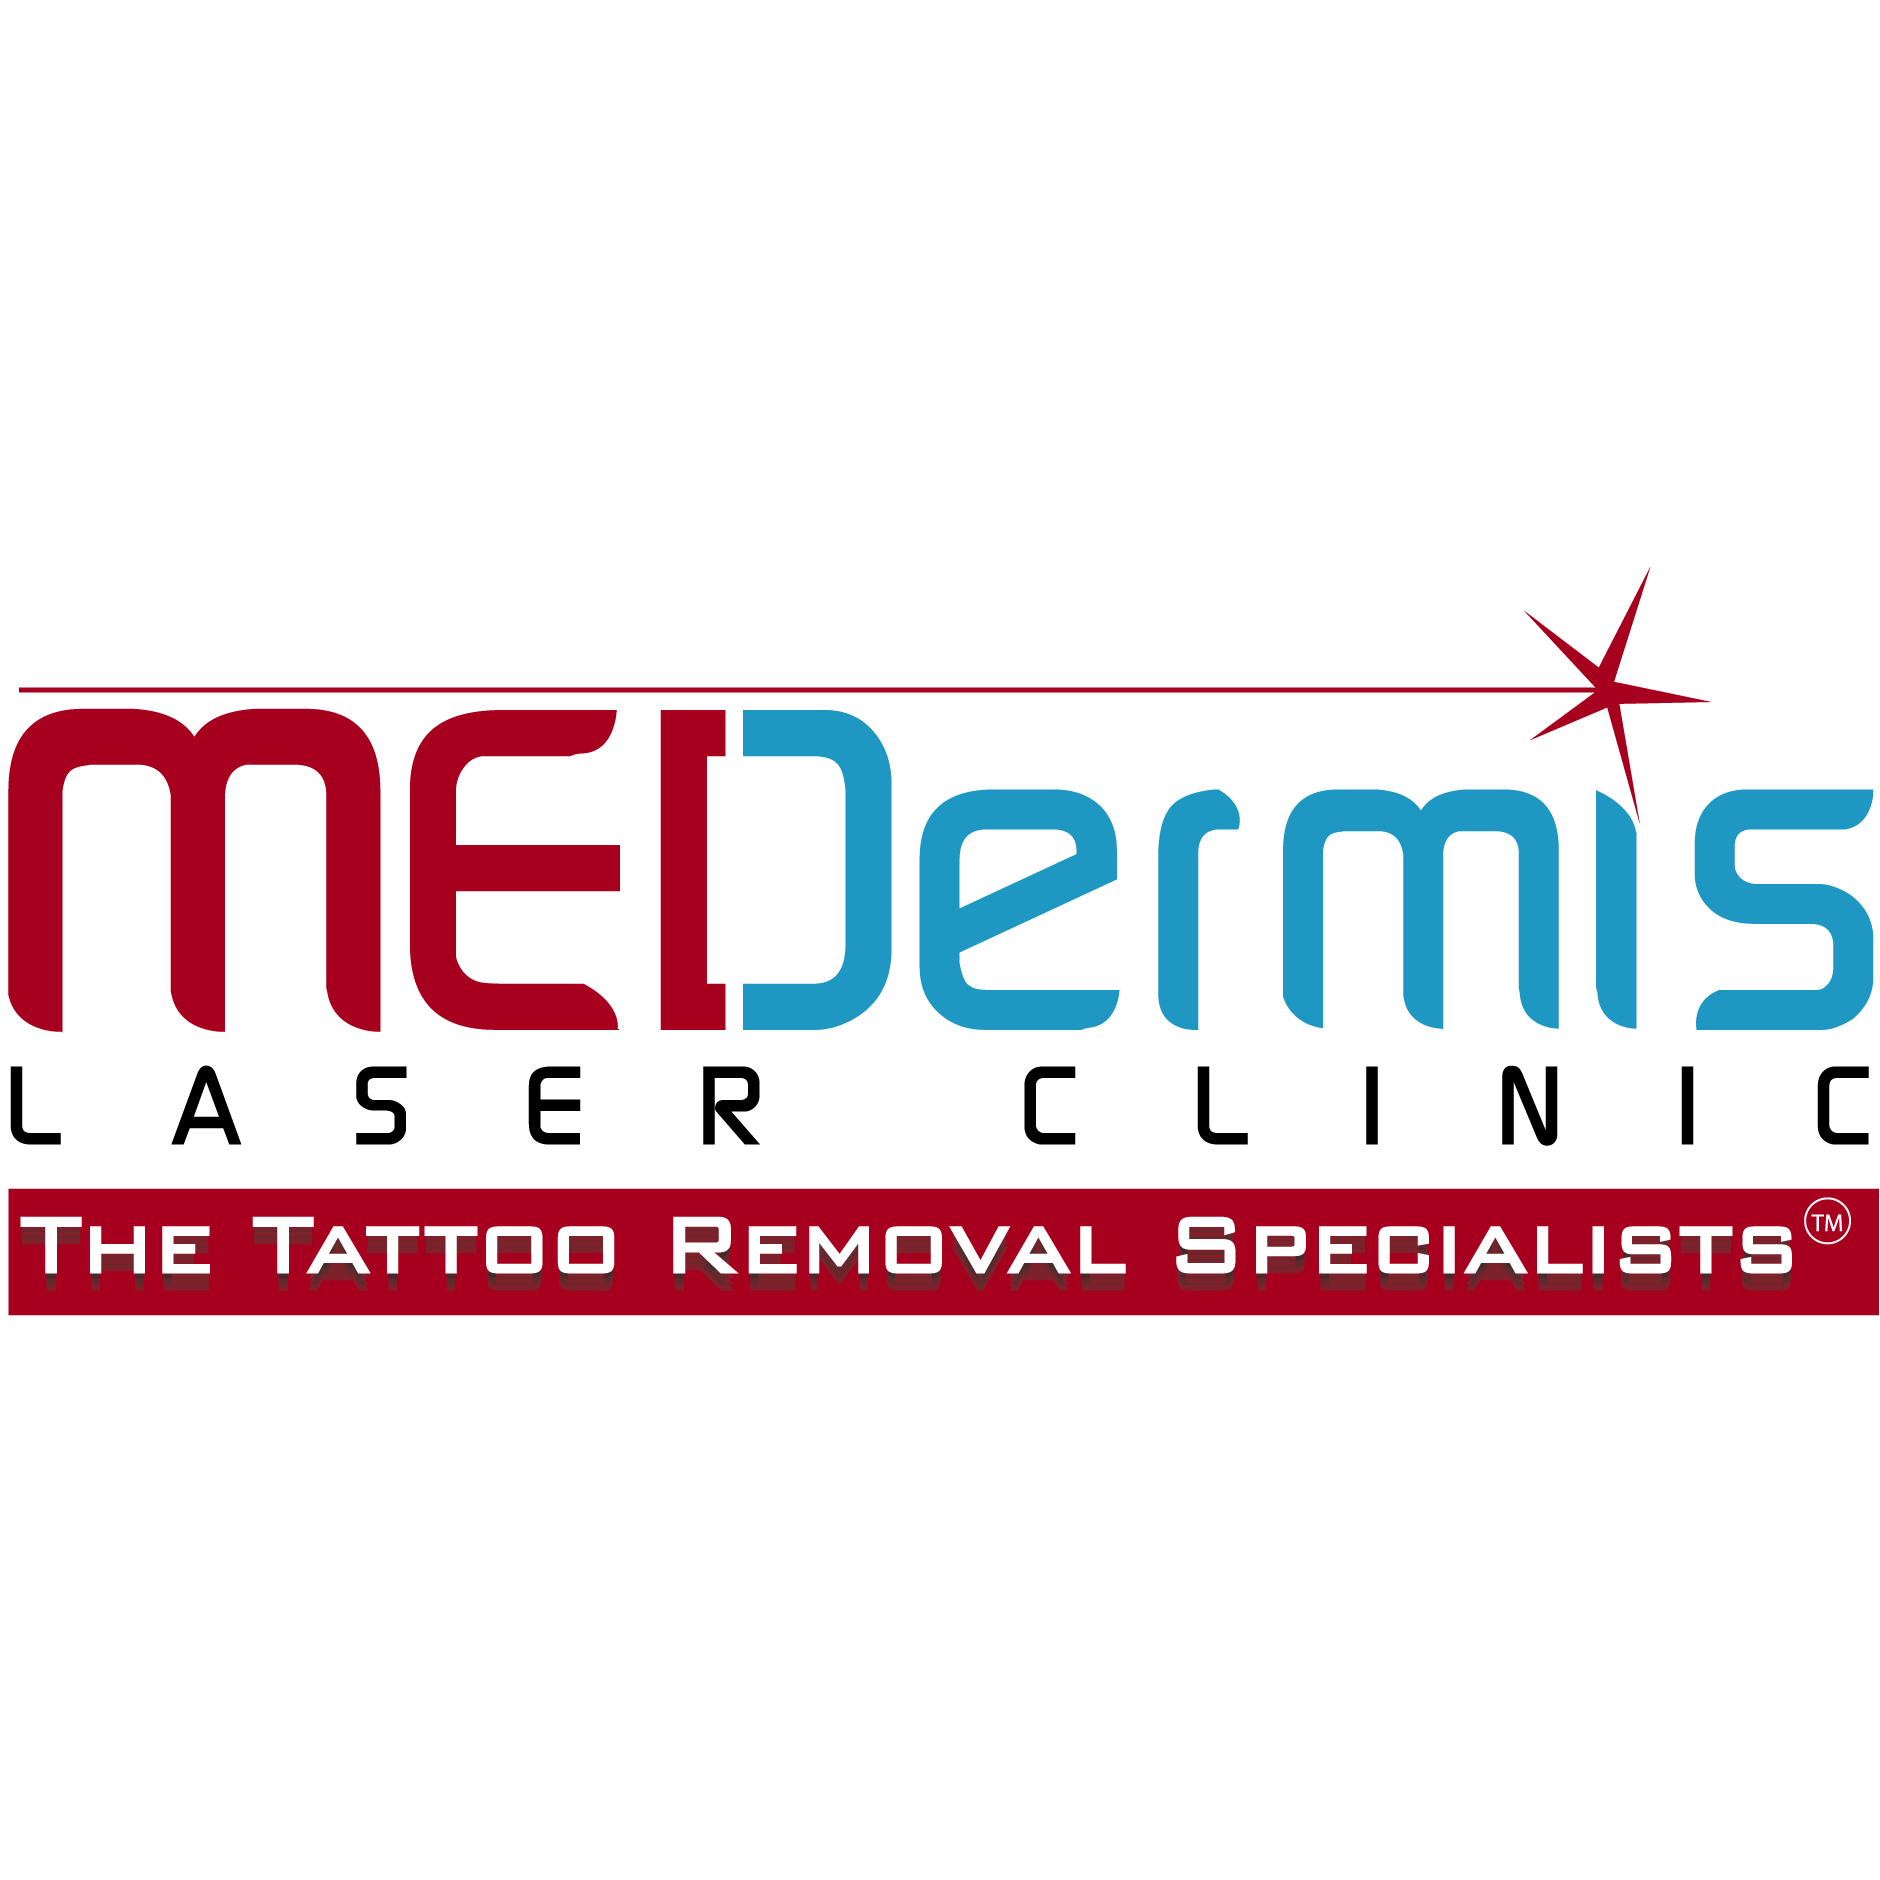 Medermis tattoo removal coupons near me in san antonio for Tattoo deals near me